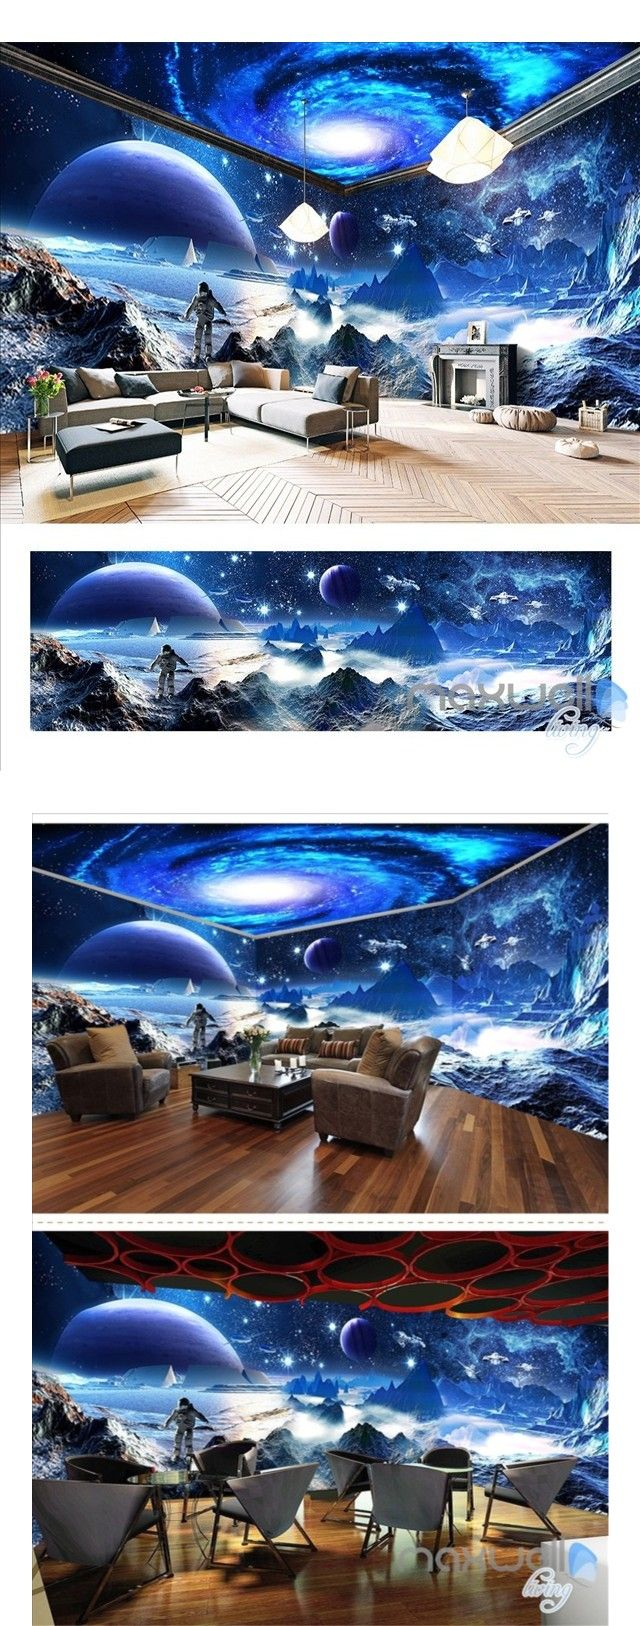 Star Wars Starry Space The Entire Room Wallpaper Wall Mural Decal  IDCQW 000049 Part 89